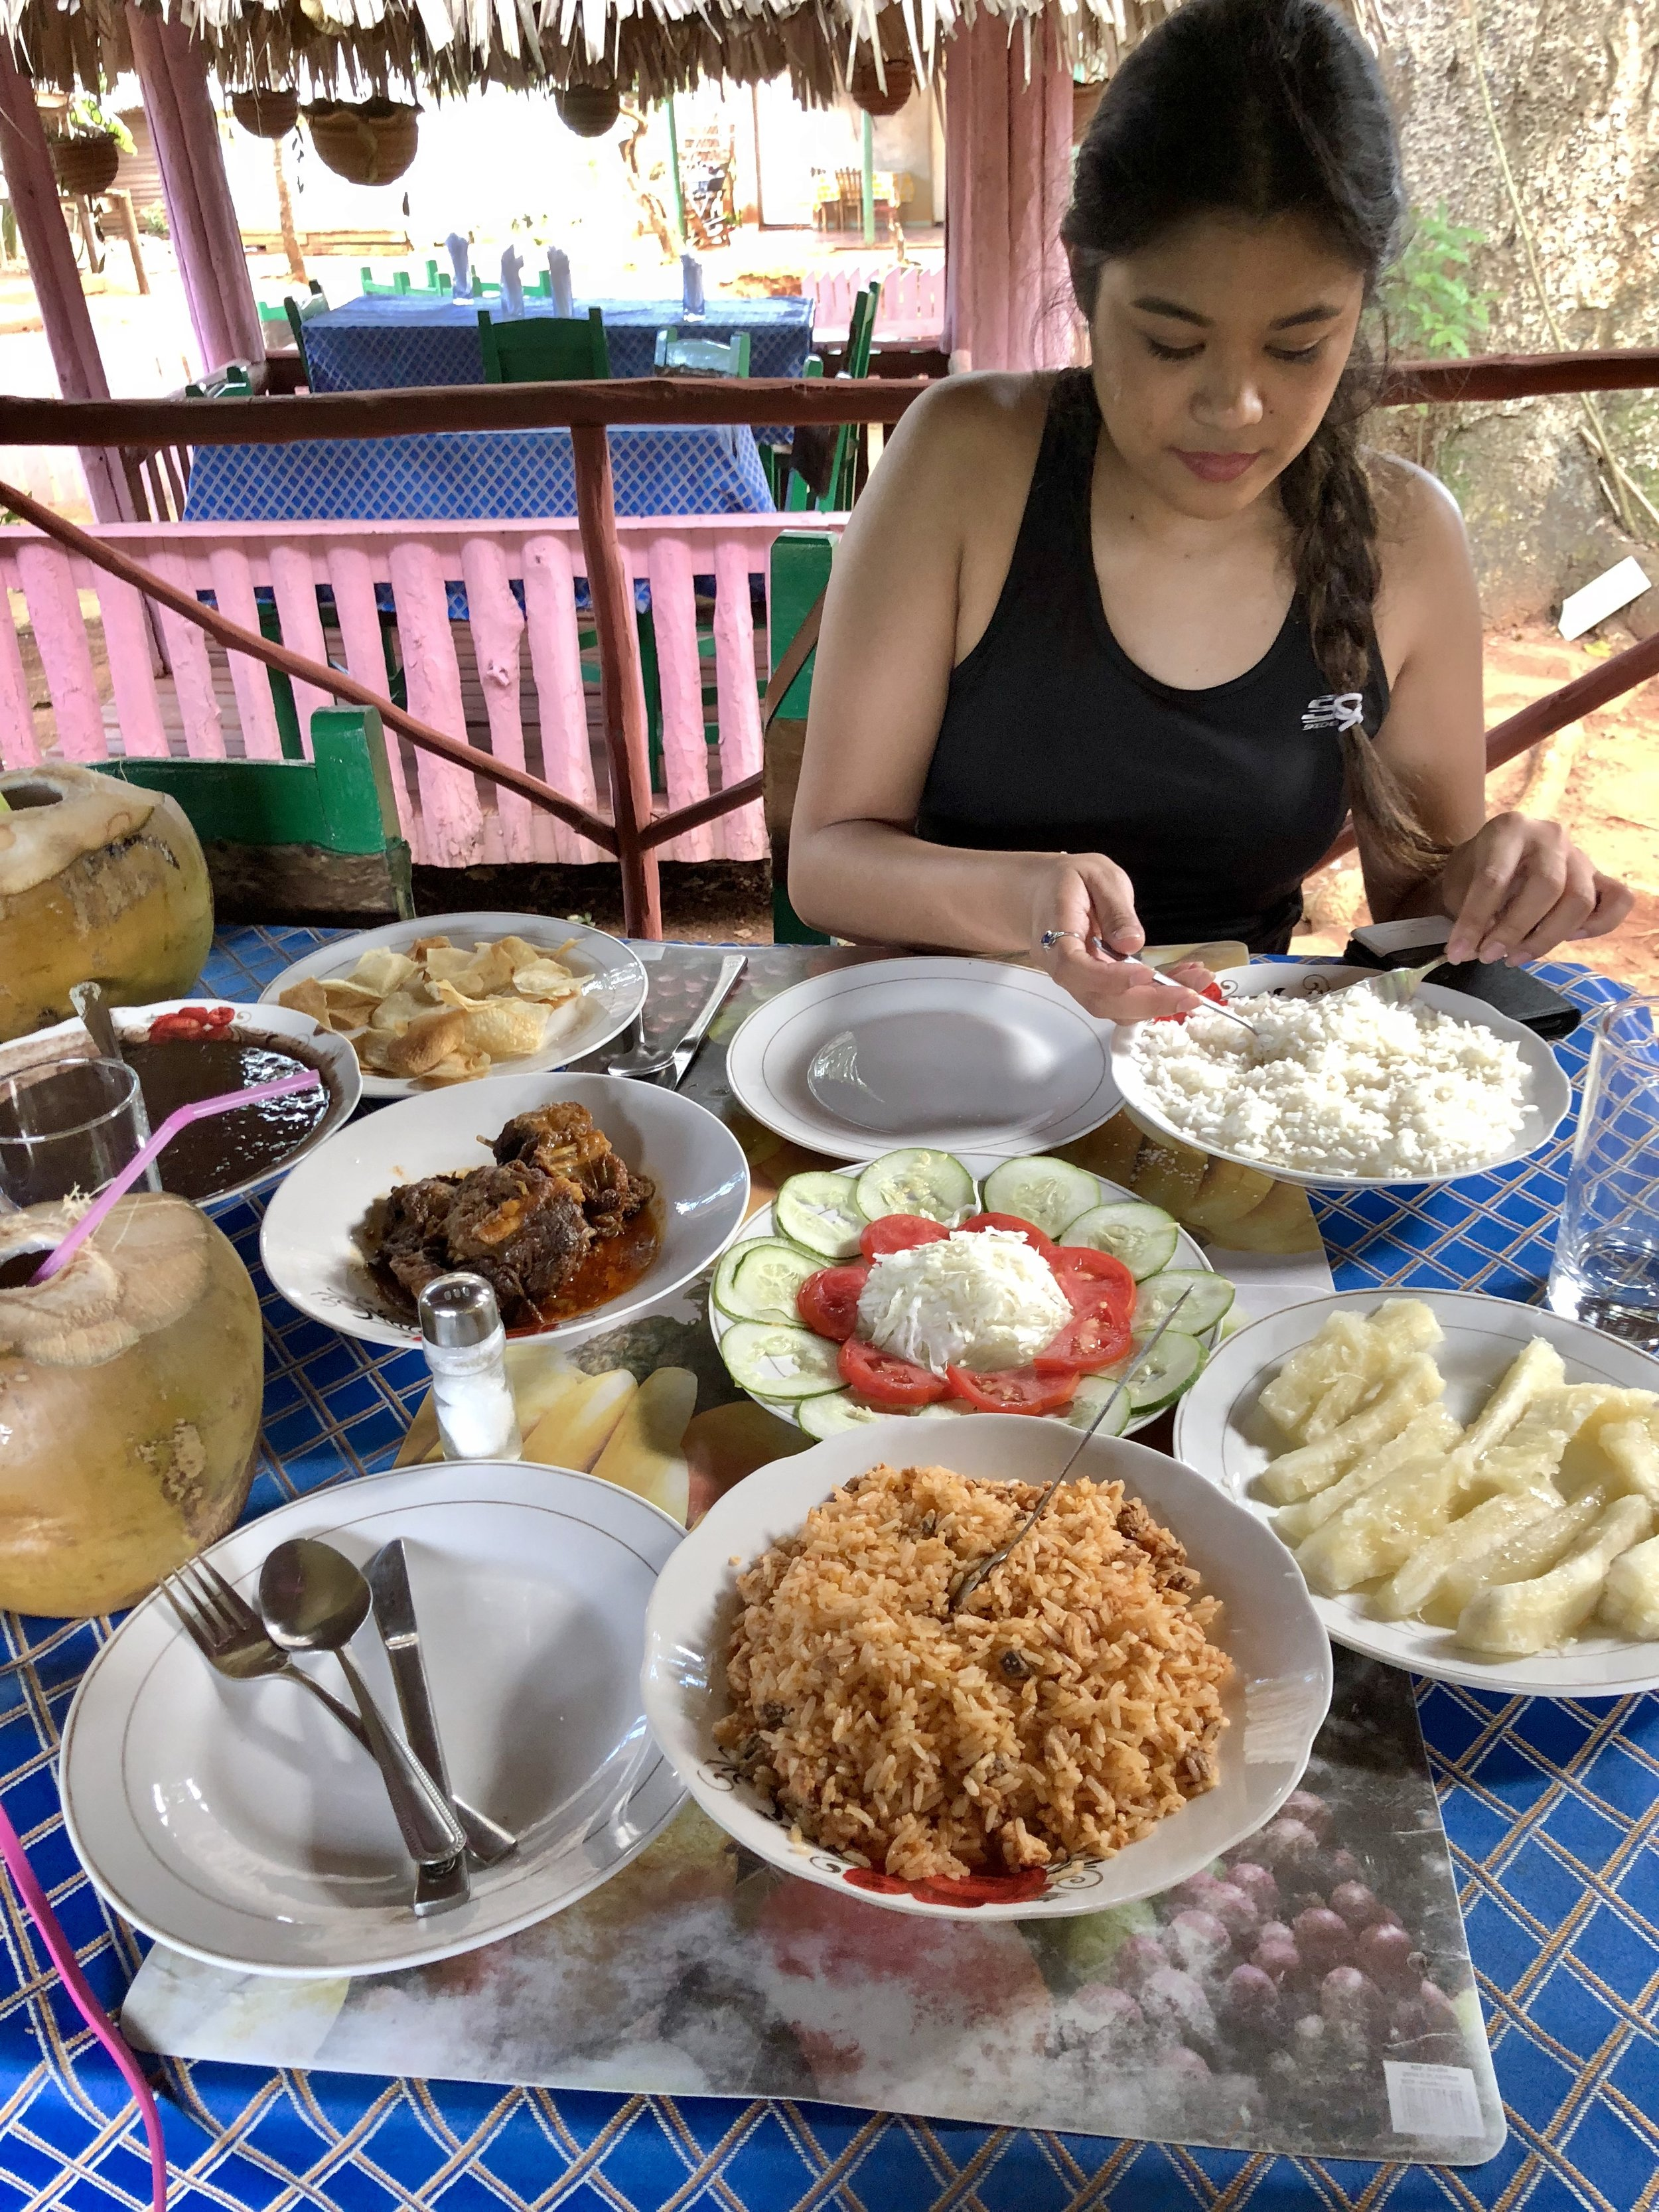 I don't know about you, but my Cuban food journey was pretty amazing